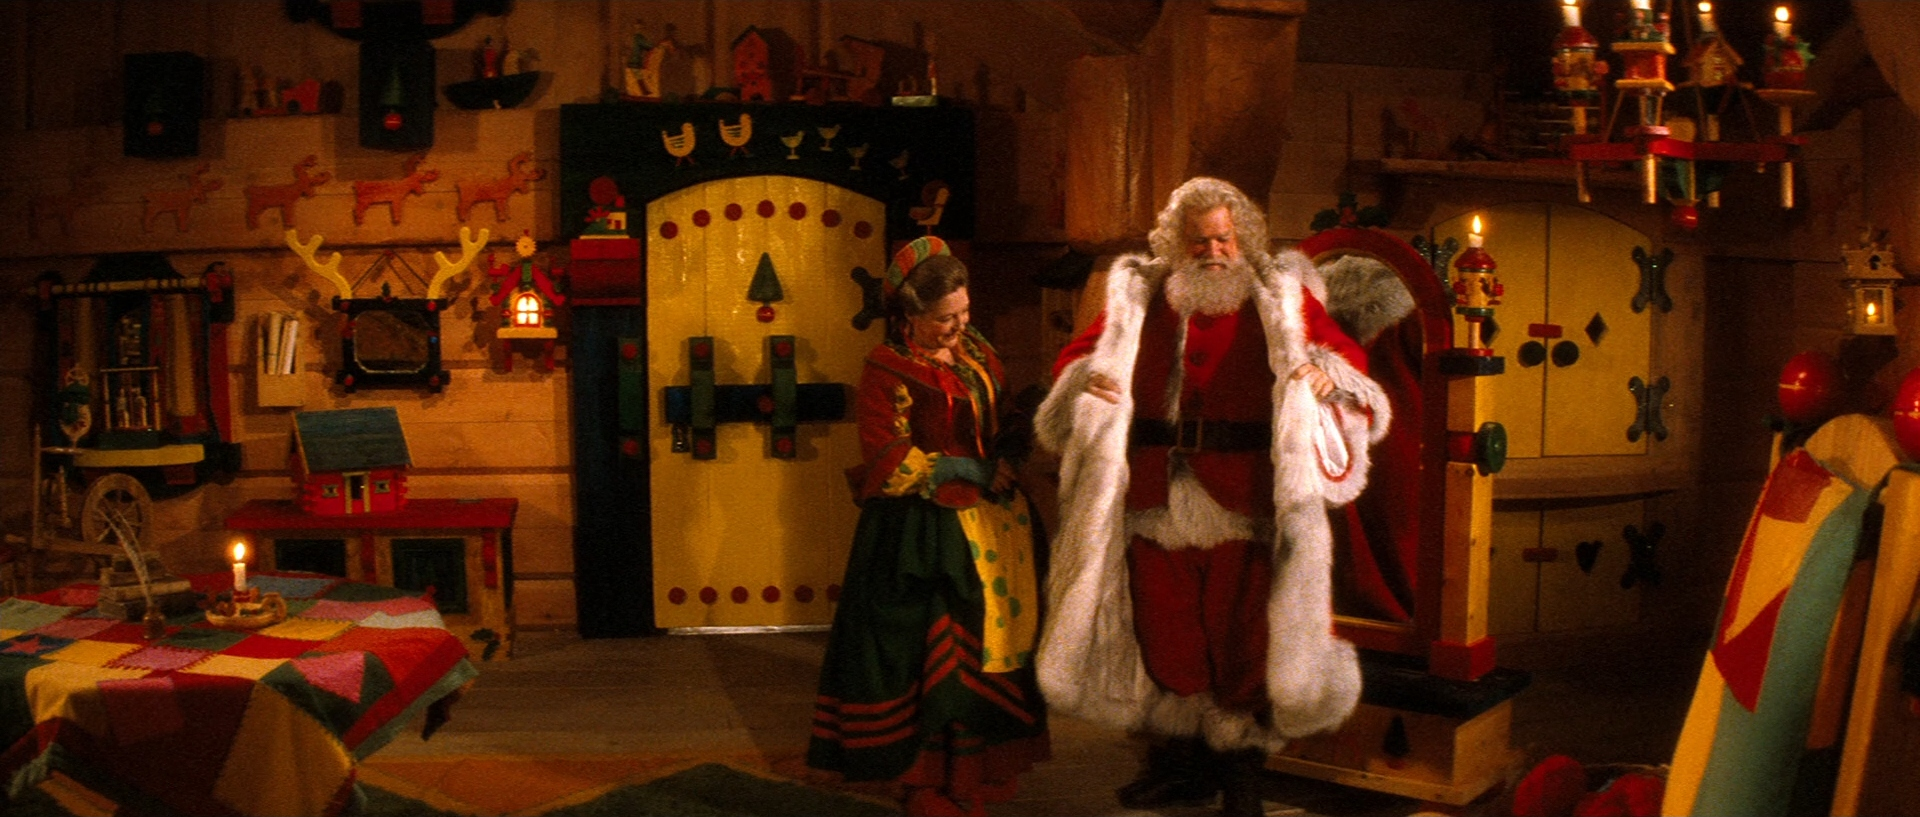 DAY 21 – SANTA CLAUS: THE MOVIE (1985)